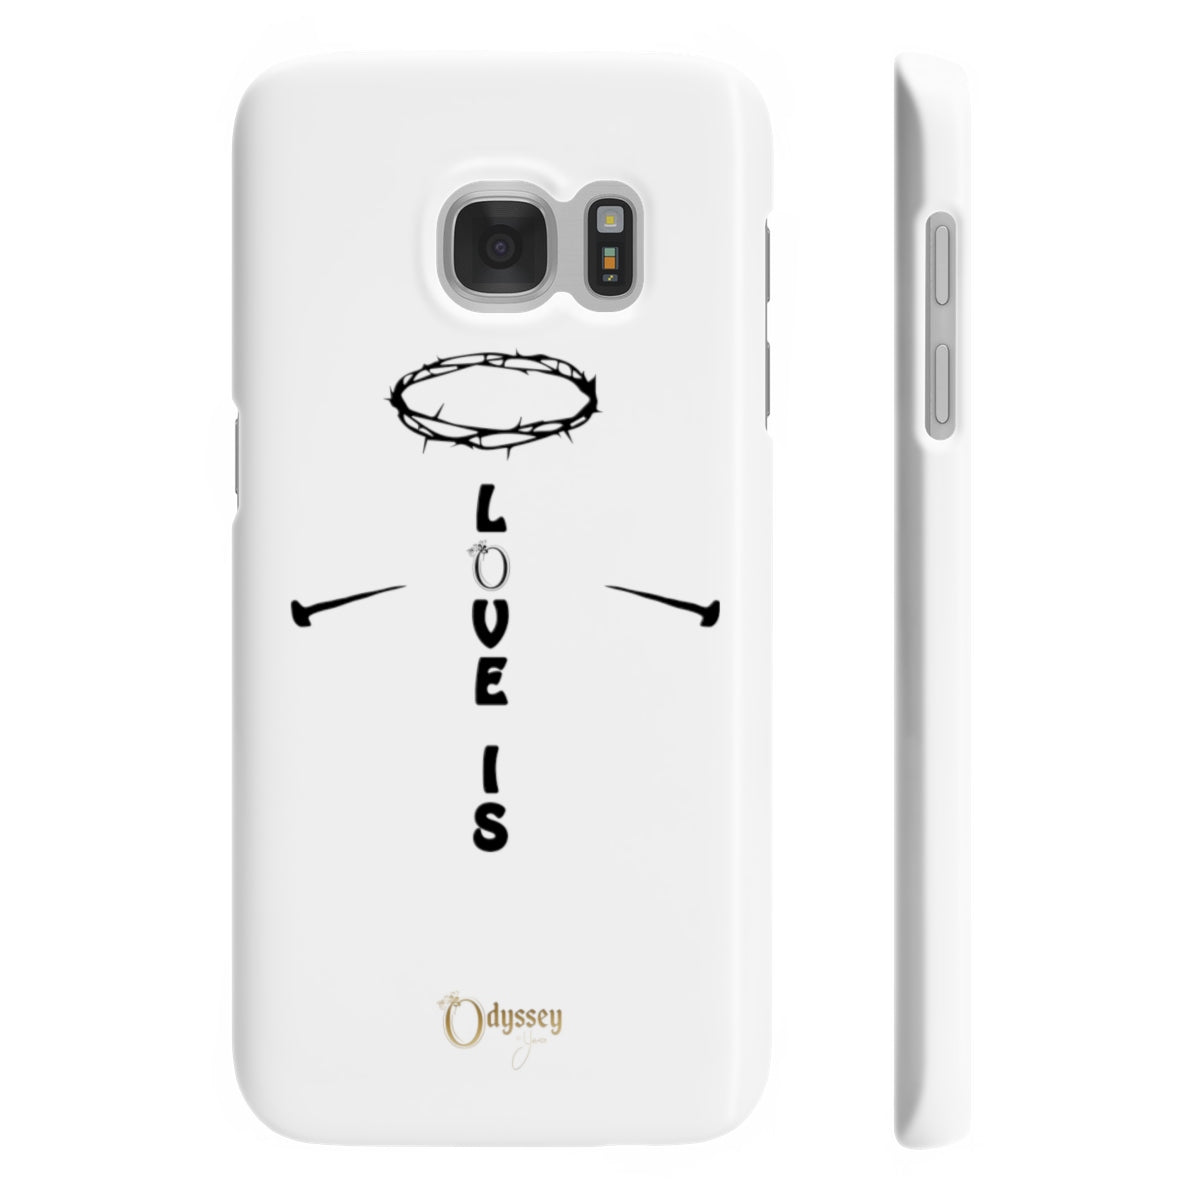 Odyssey Love Is Slim Phone Cases - Phone Case - Odyssey By Yendi